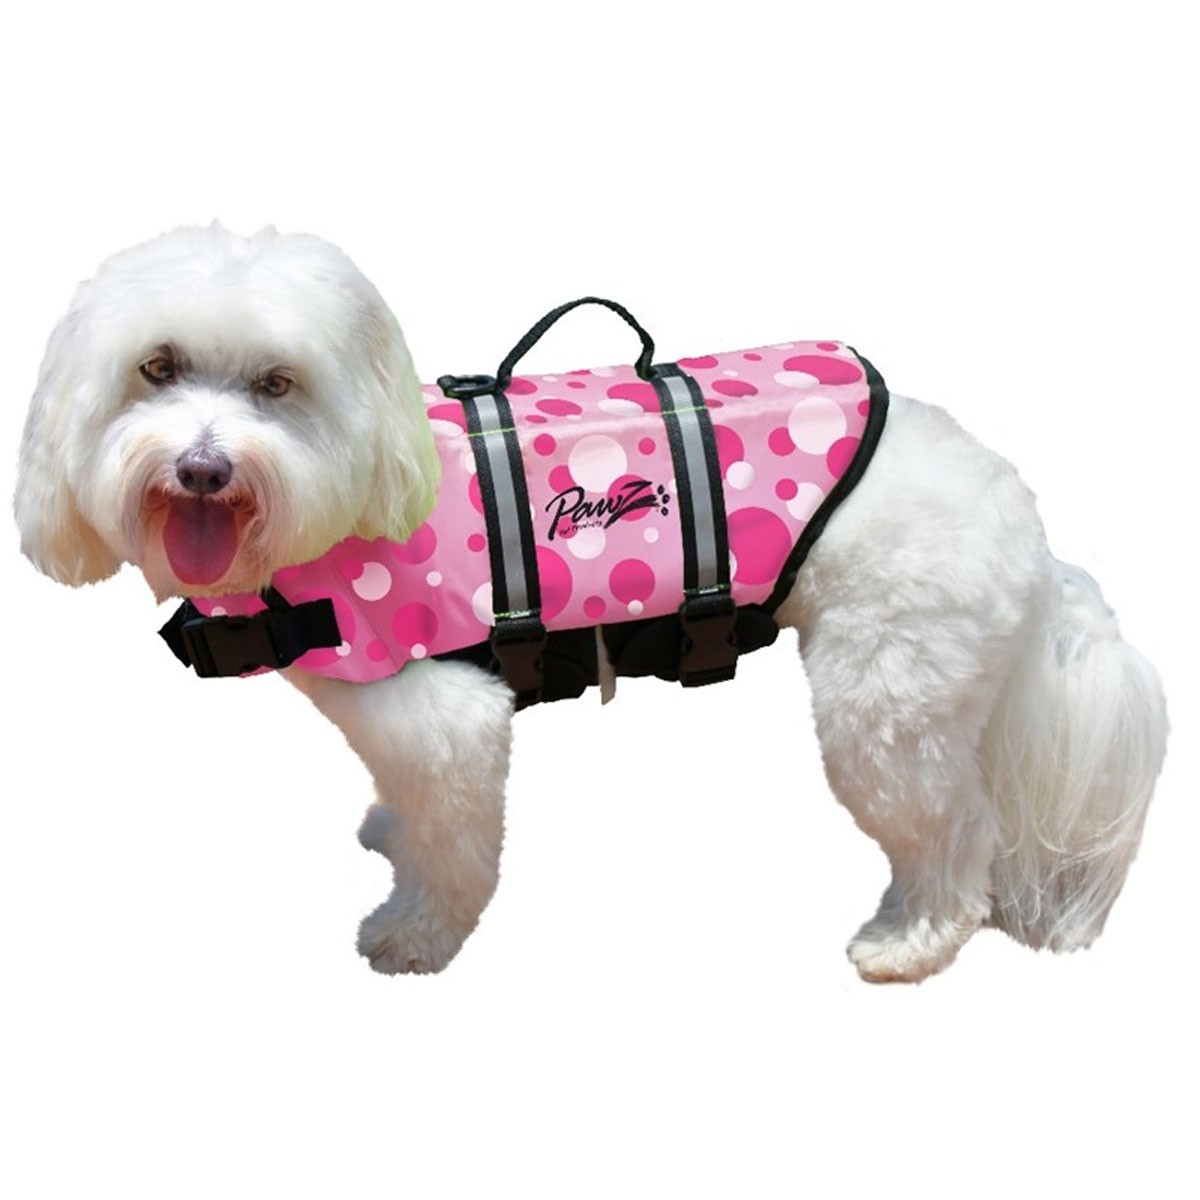 Doggy Life Jacket - Pink